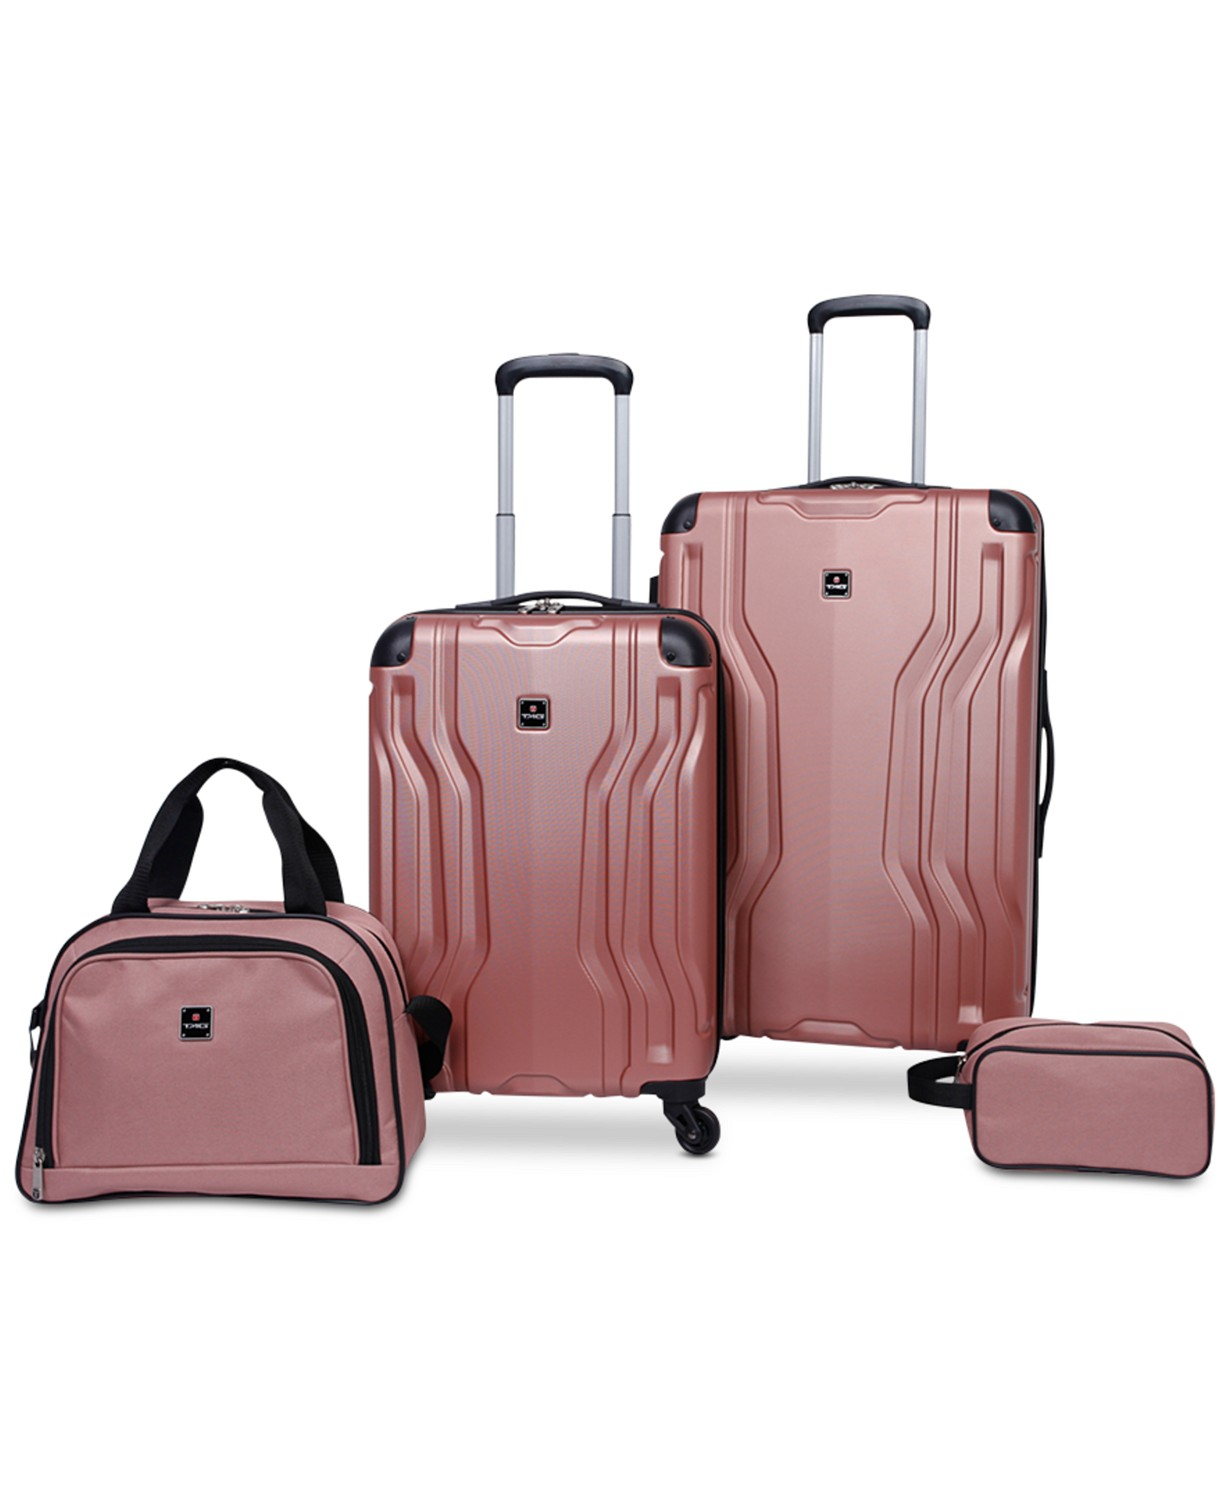 Tag Legacy 4 Piece Luggage Set (Pink)